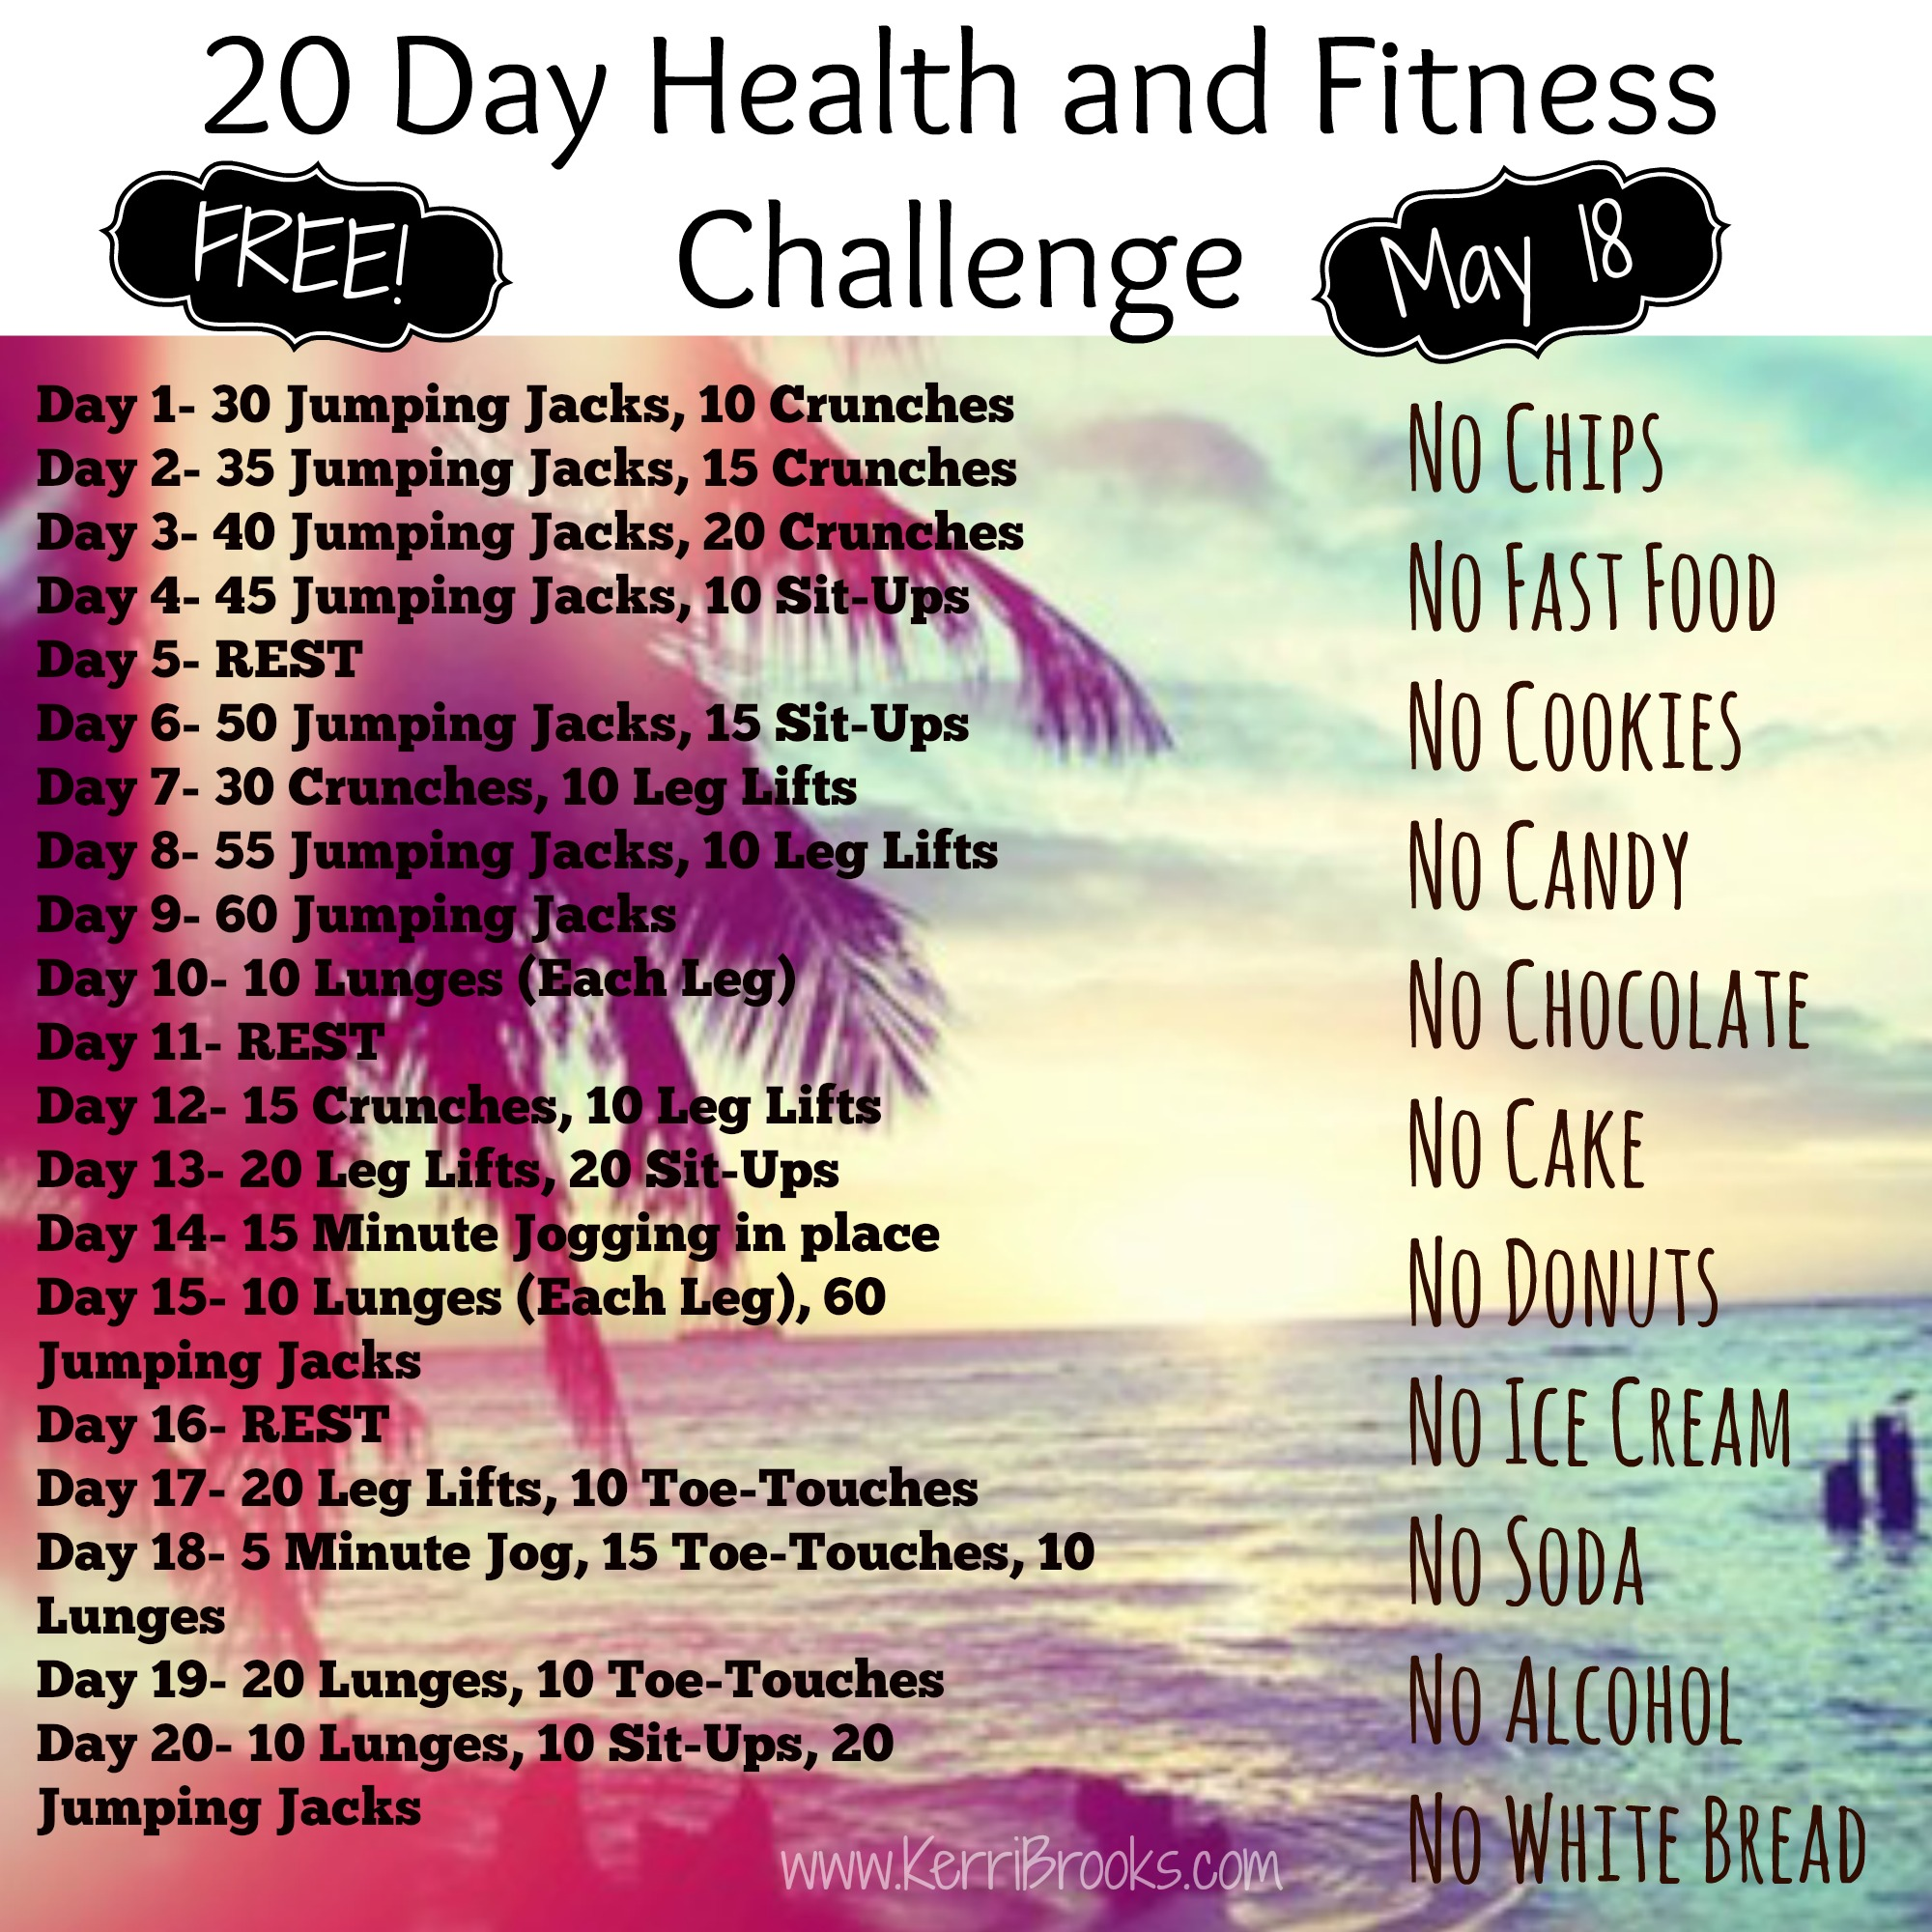 Take Back Control 20 Day Challenge